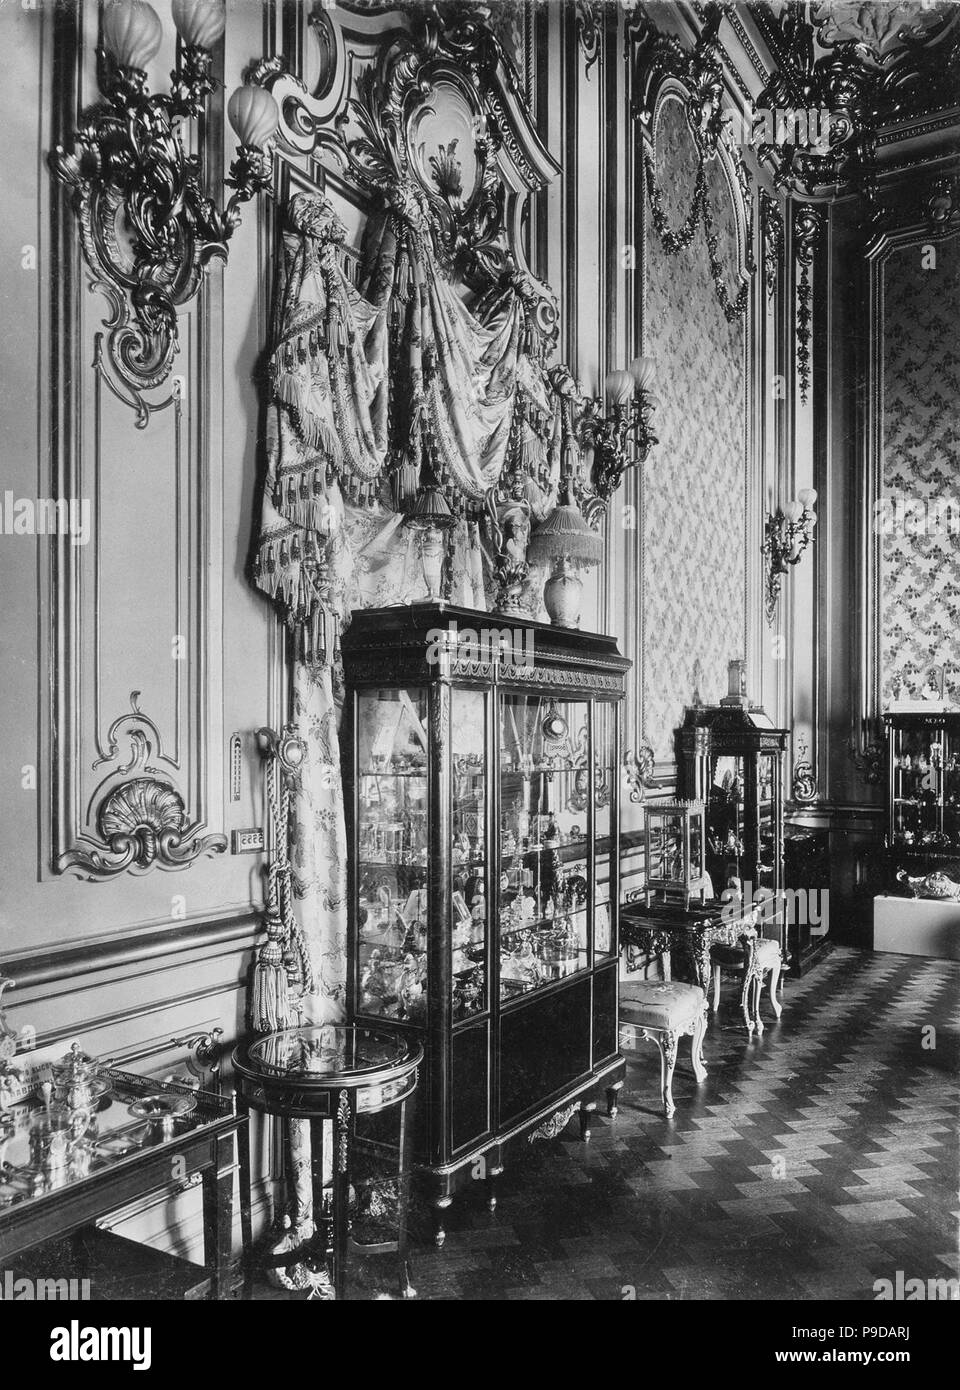 The Exhibition of the Fabergé House. Museum: State Hermitage, St. Petersburg. - Stock Image